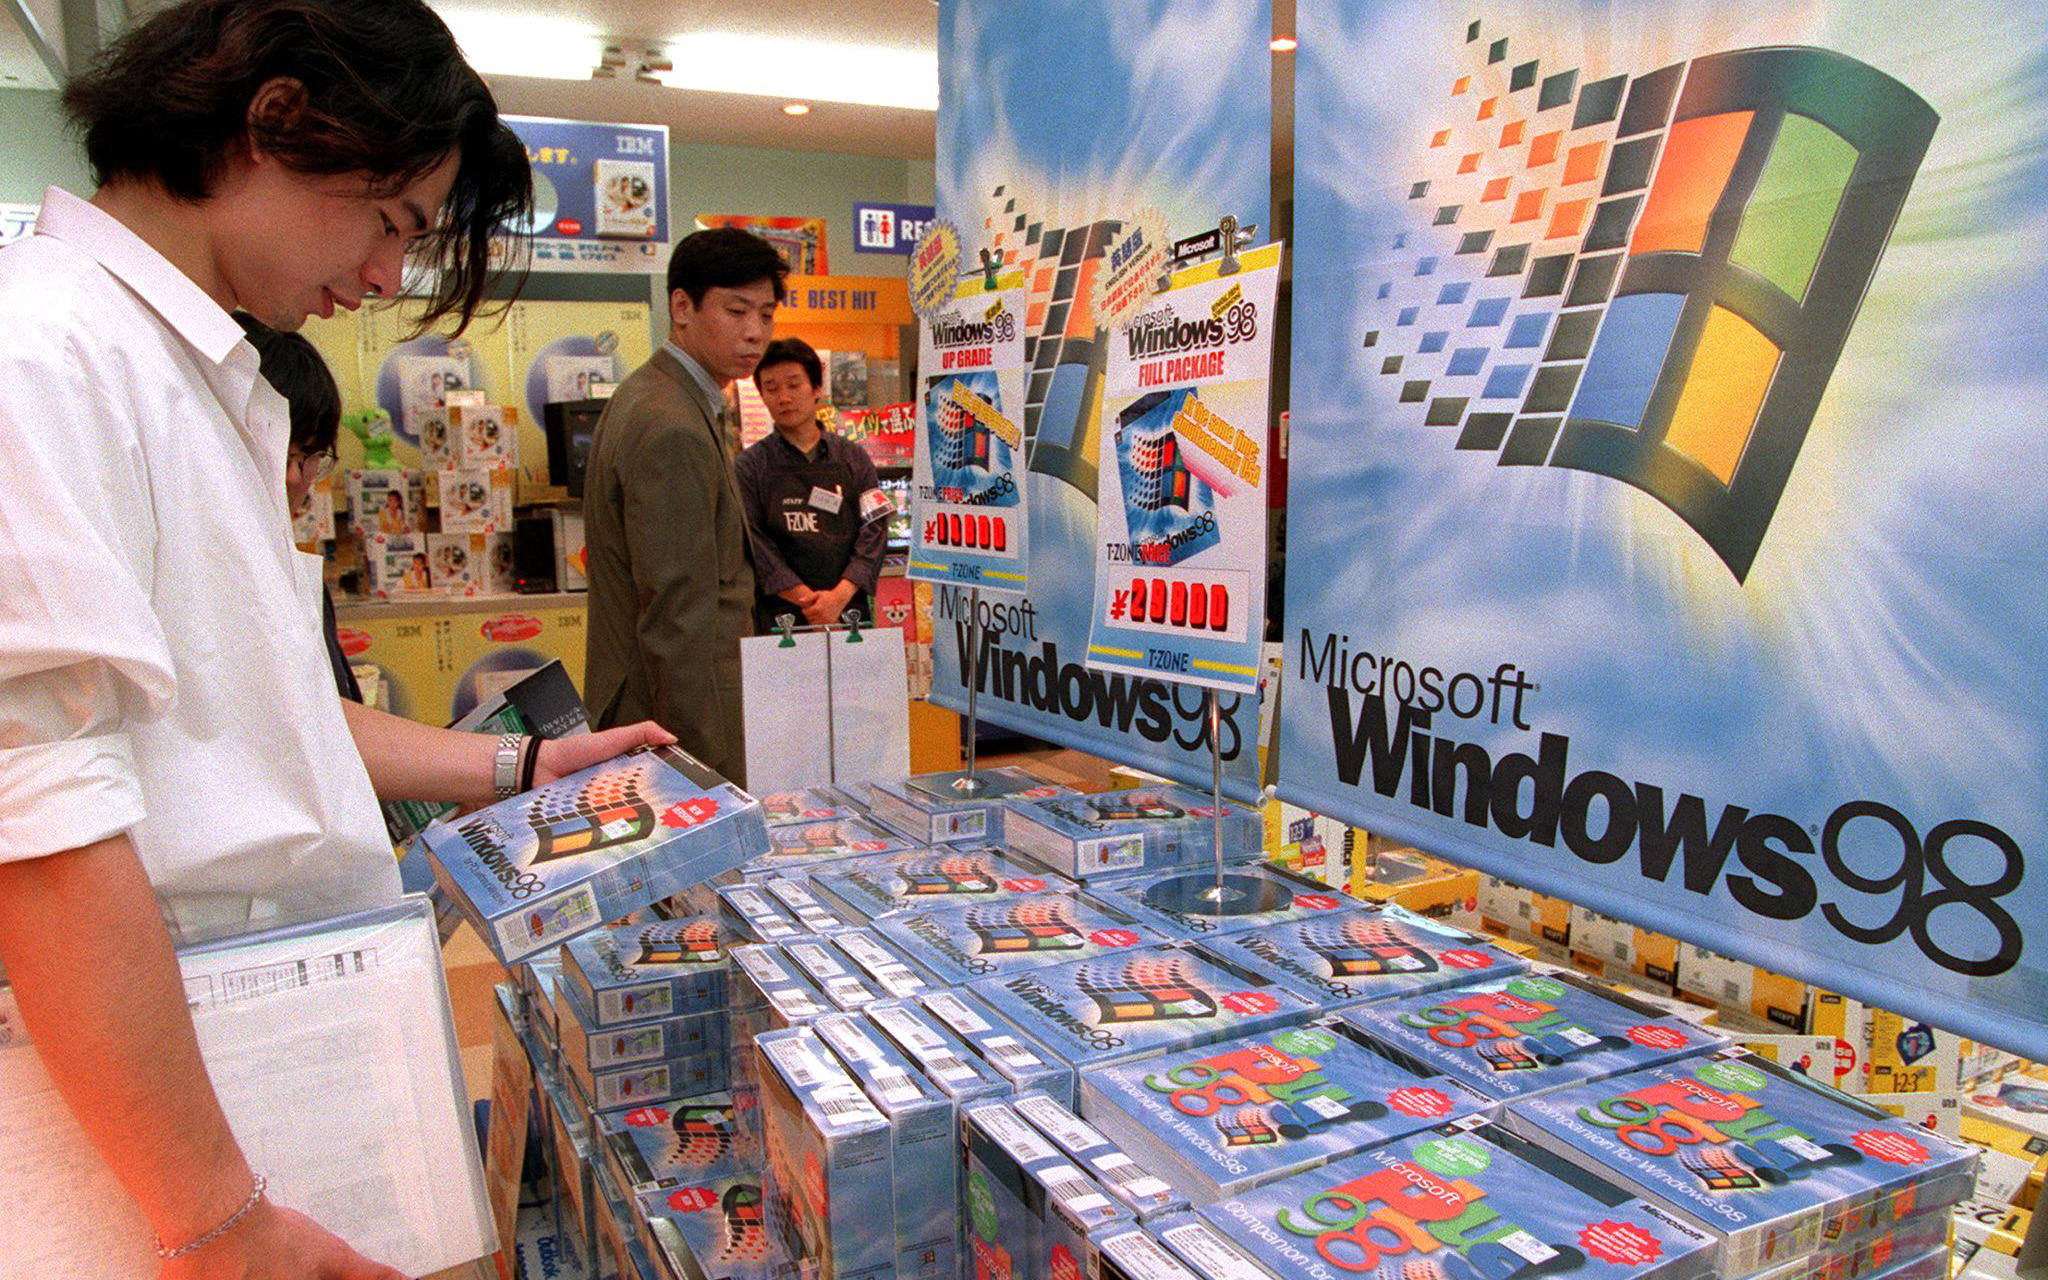 Windows 98 - A customer looks at a box in Japan